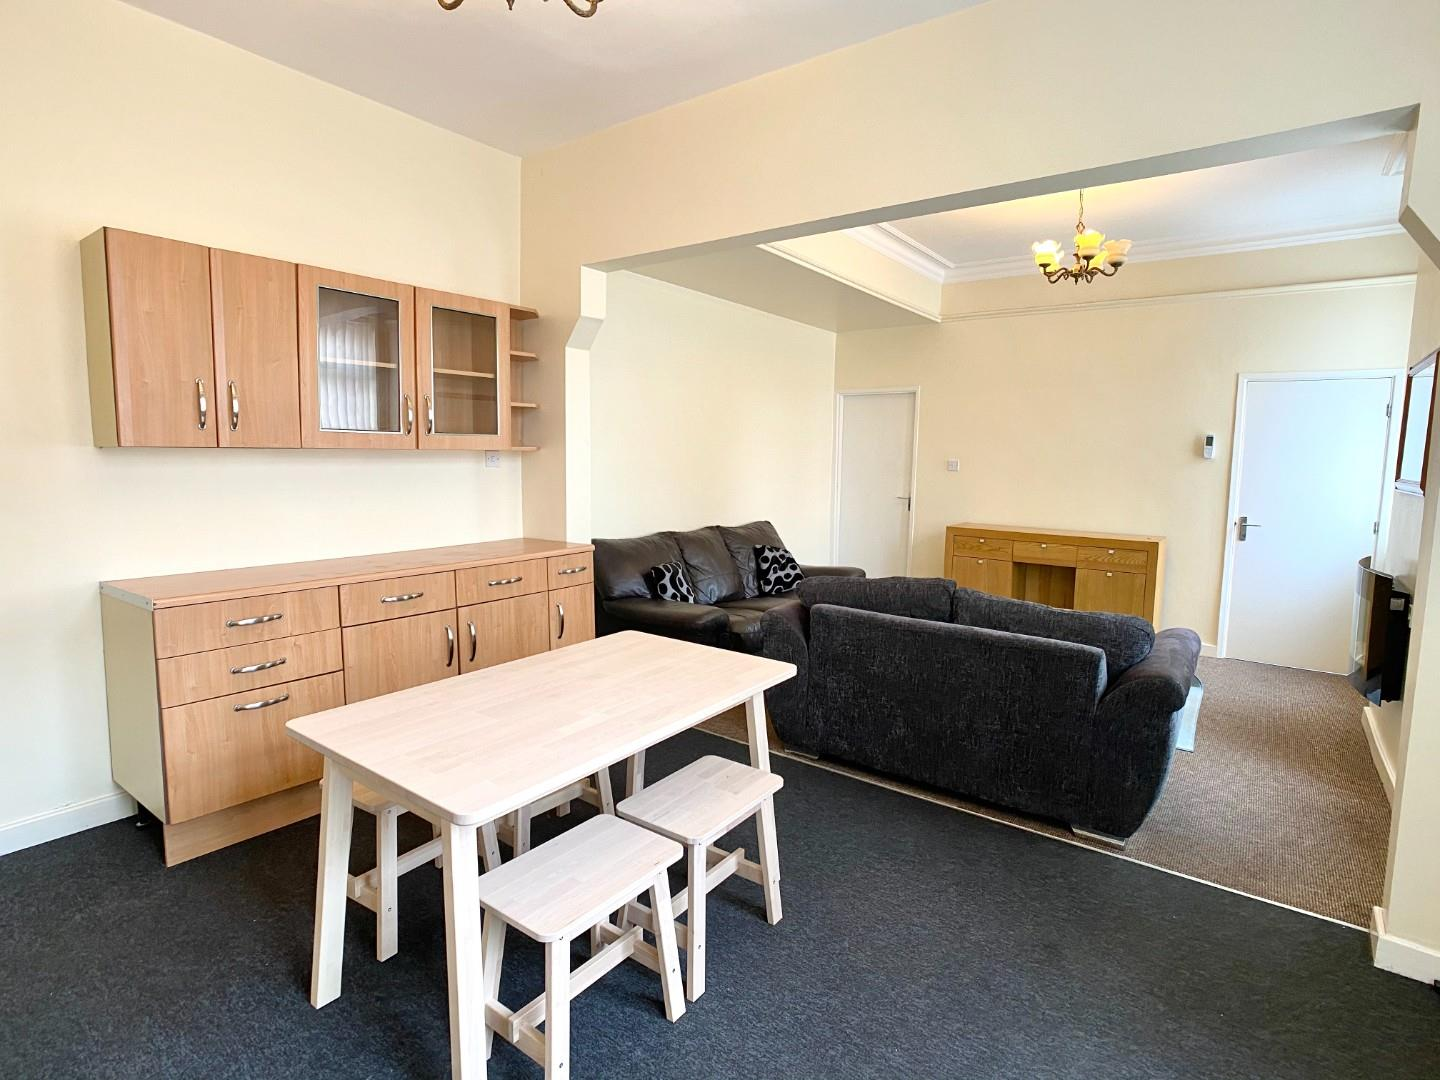 3 bed private halls to rent in Ashfields New Road, Newcastle, ST5